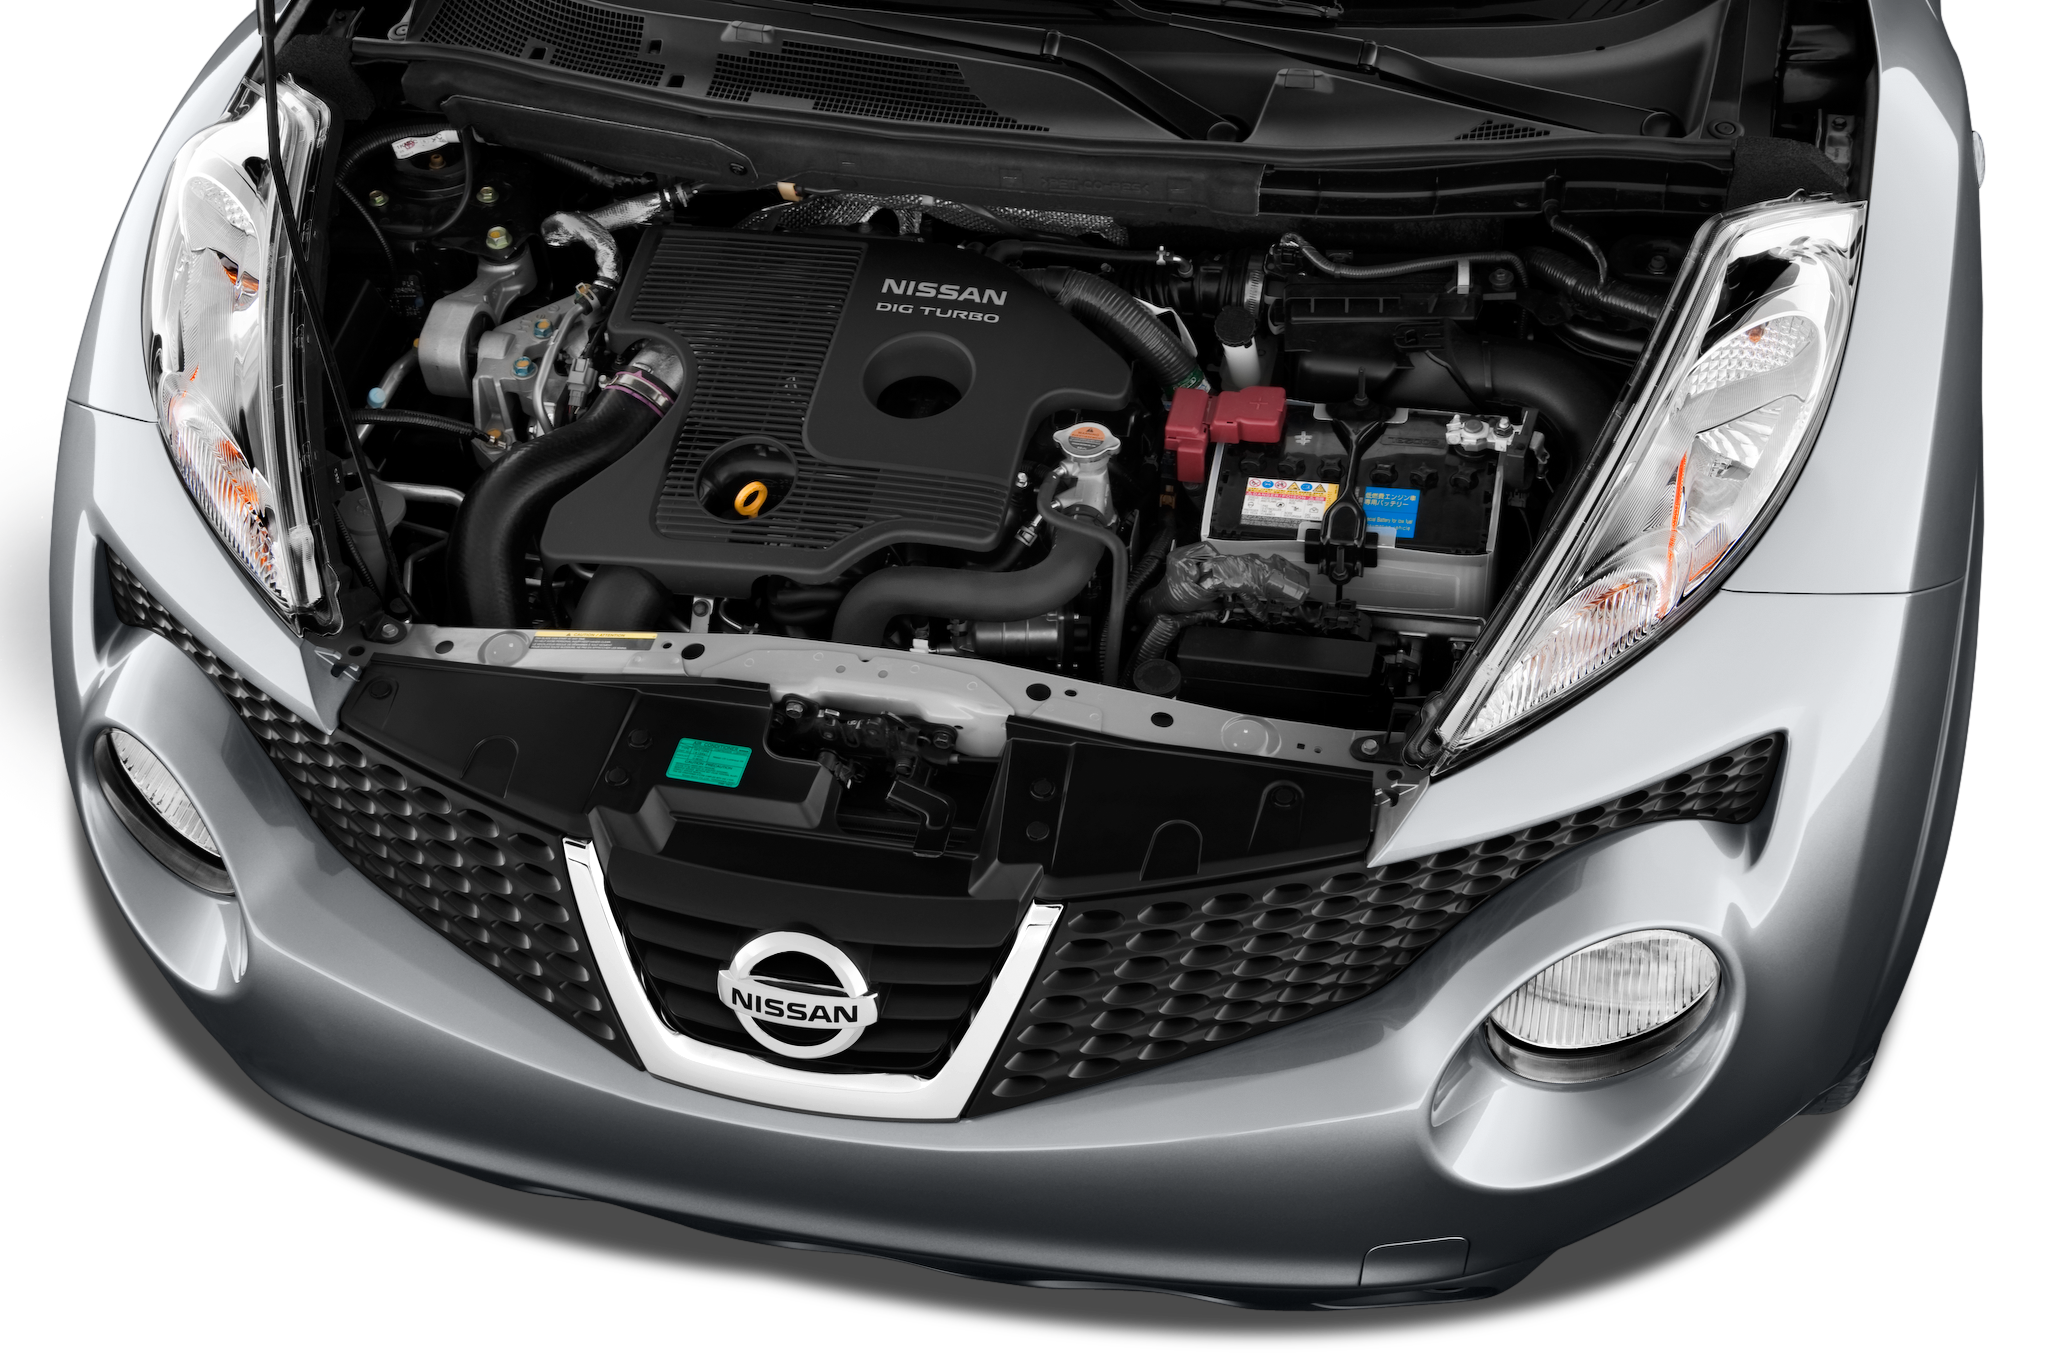 First Look: 2013 Nissan Sentra - Automobile Magazine